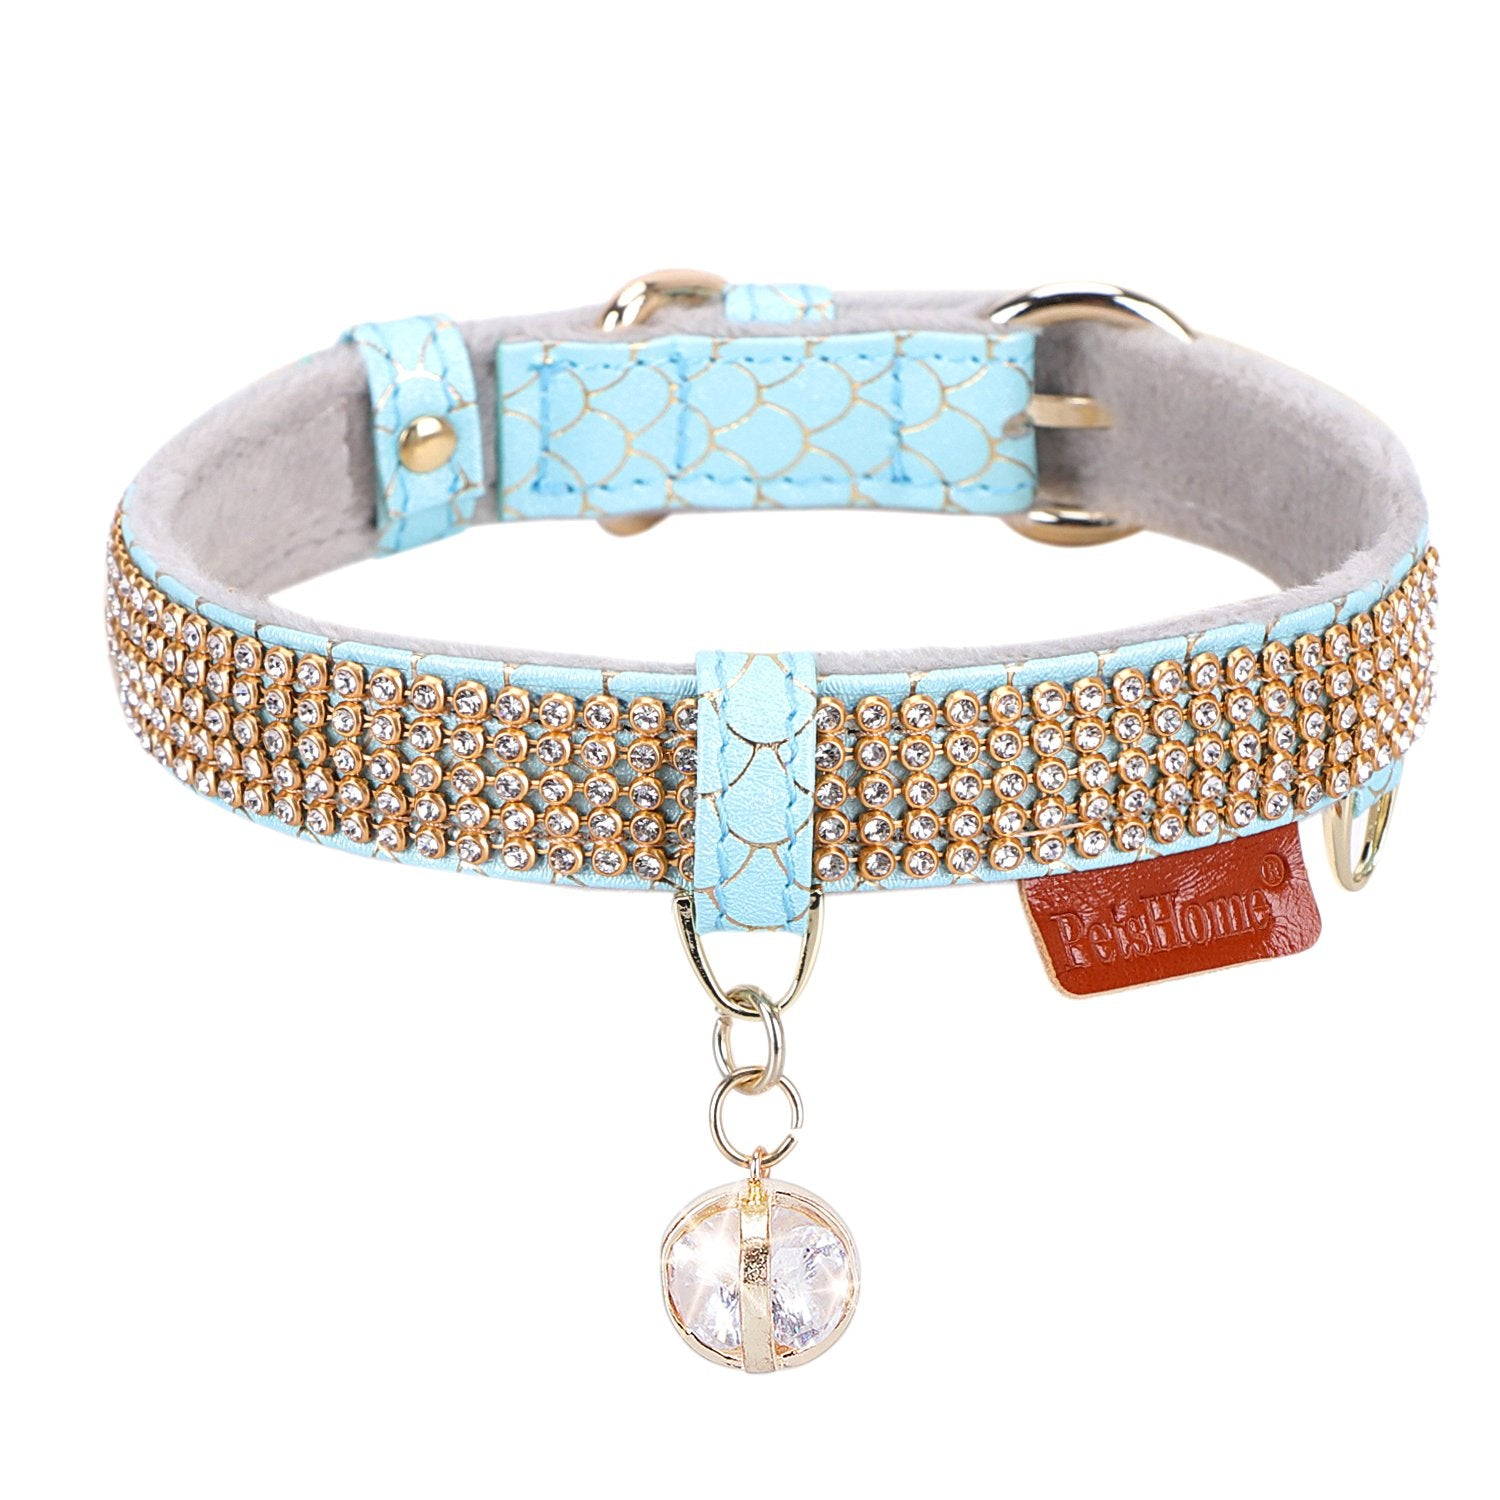 Adjustable Collars for Small Dog and Cat